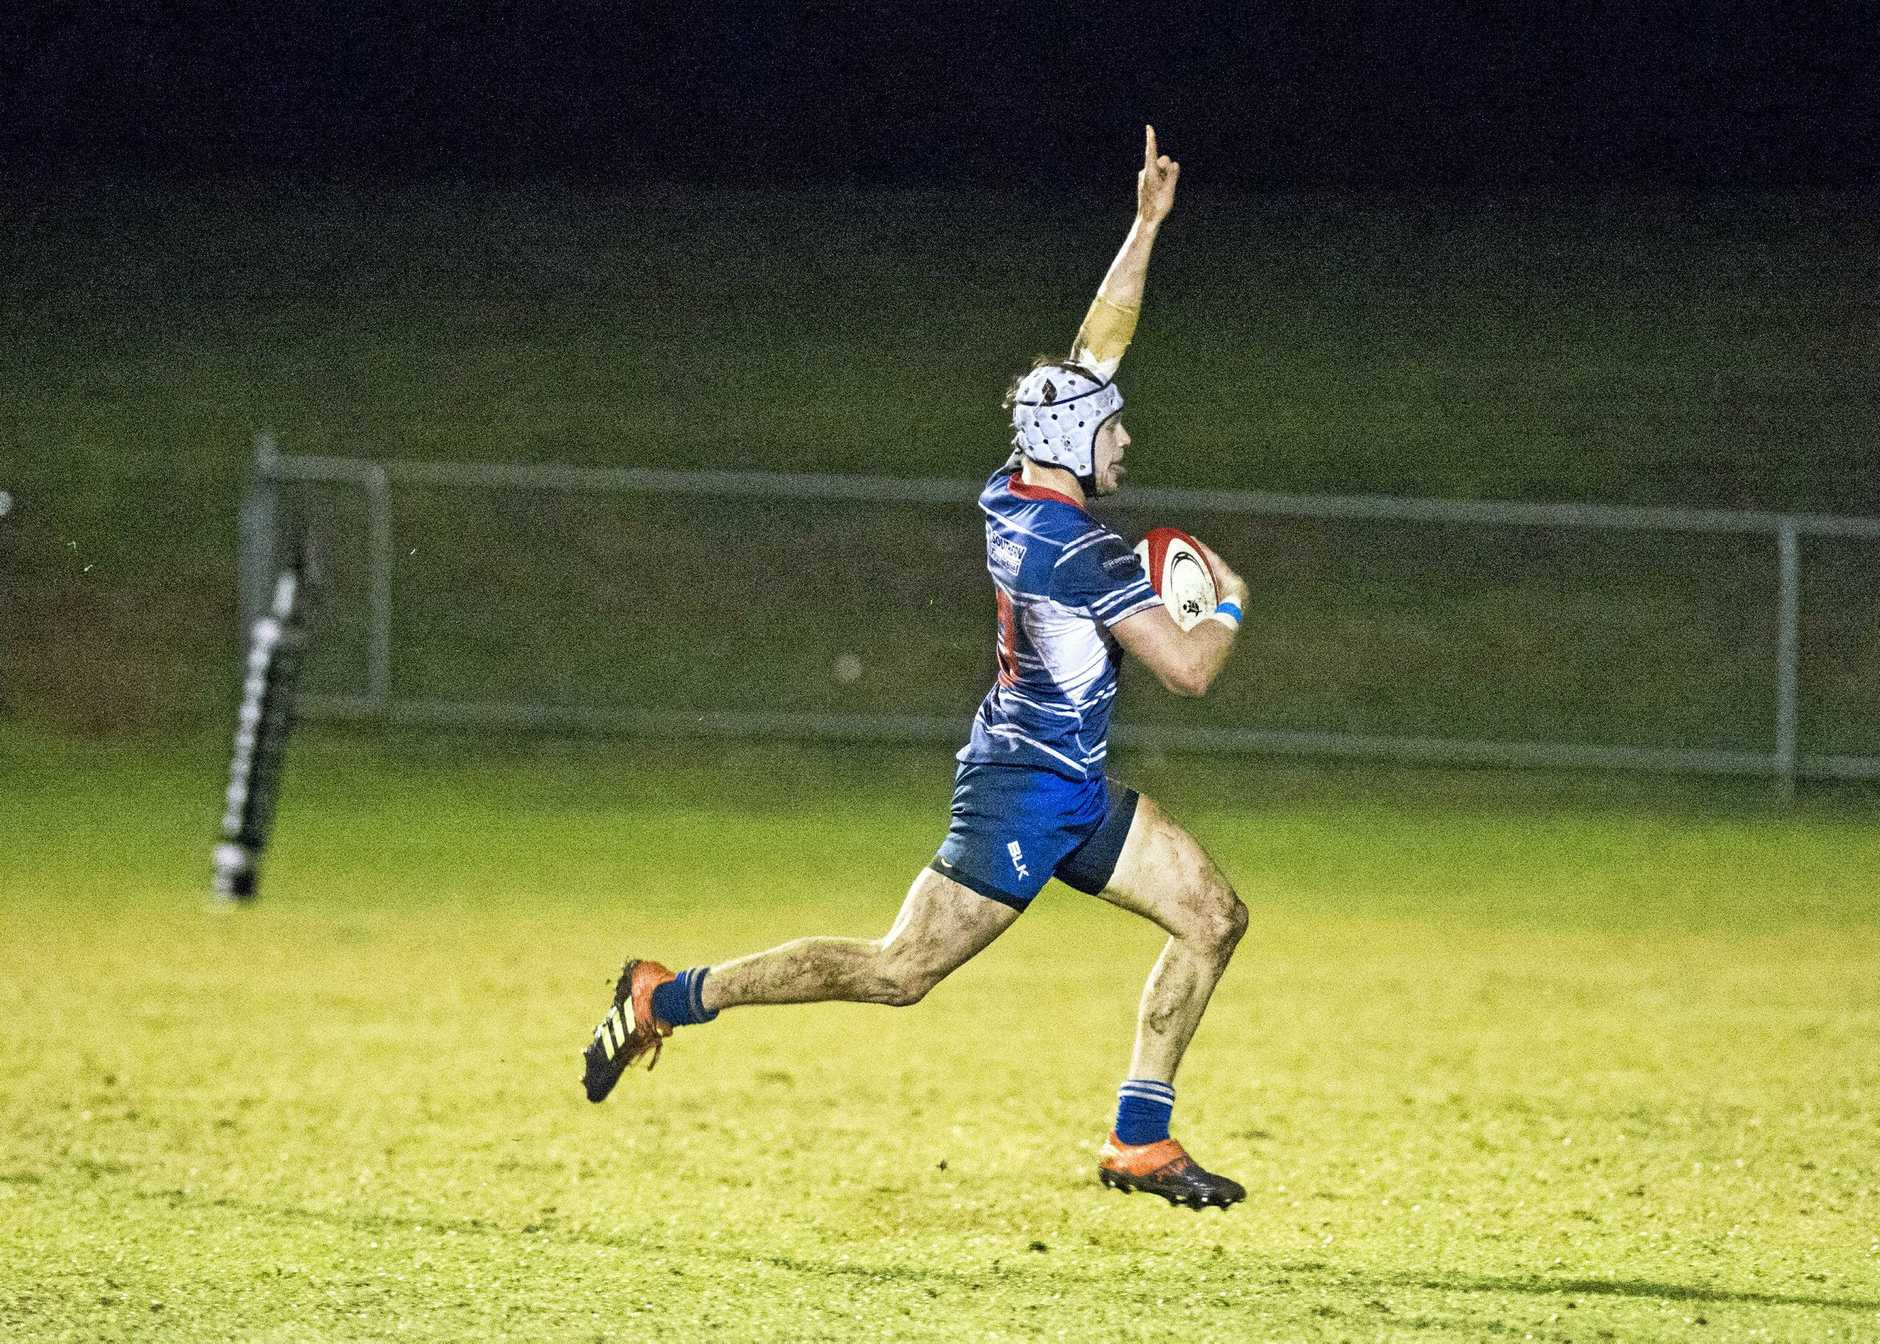 USQ's Jack Scanlon on his way to score a try. Rugby Union, Rangers vs USQ. Saturday, 8th Jun, 2019.